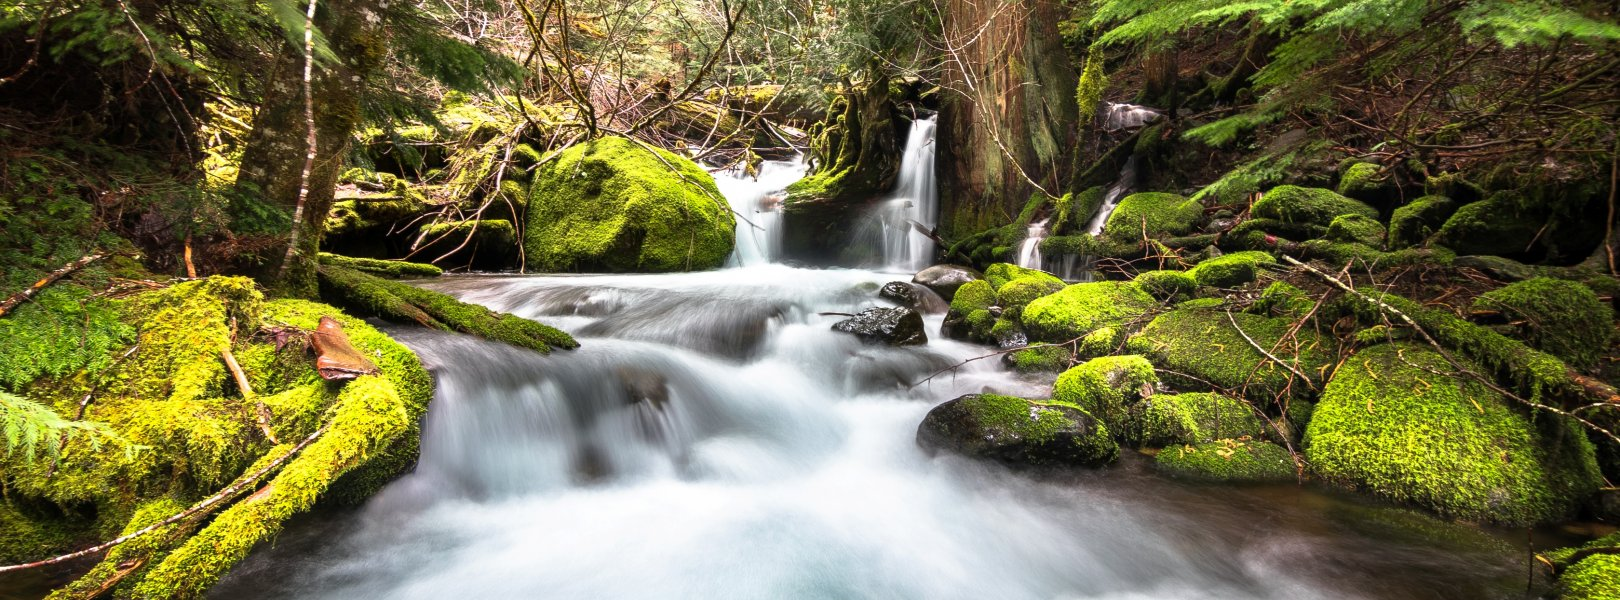 McRae Creek flows through the lush and mossy HJ Andrews Experimental Forest in central Oregon.